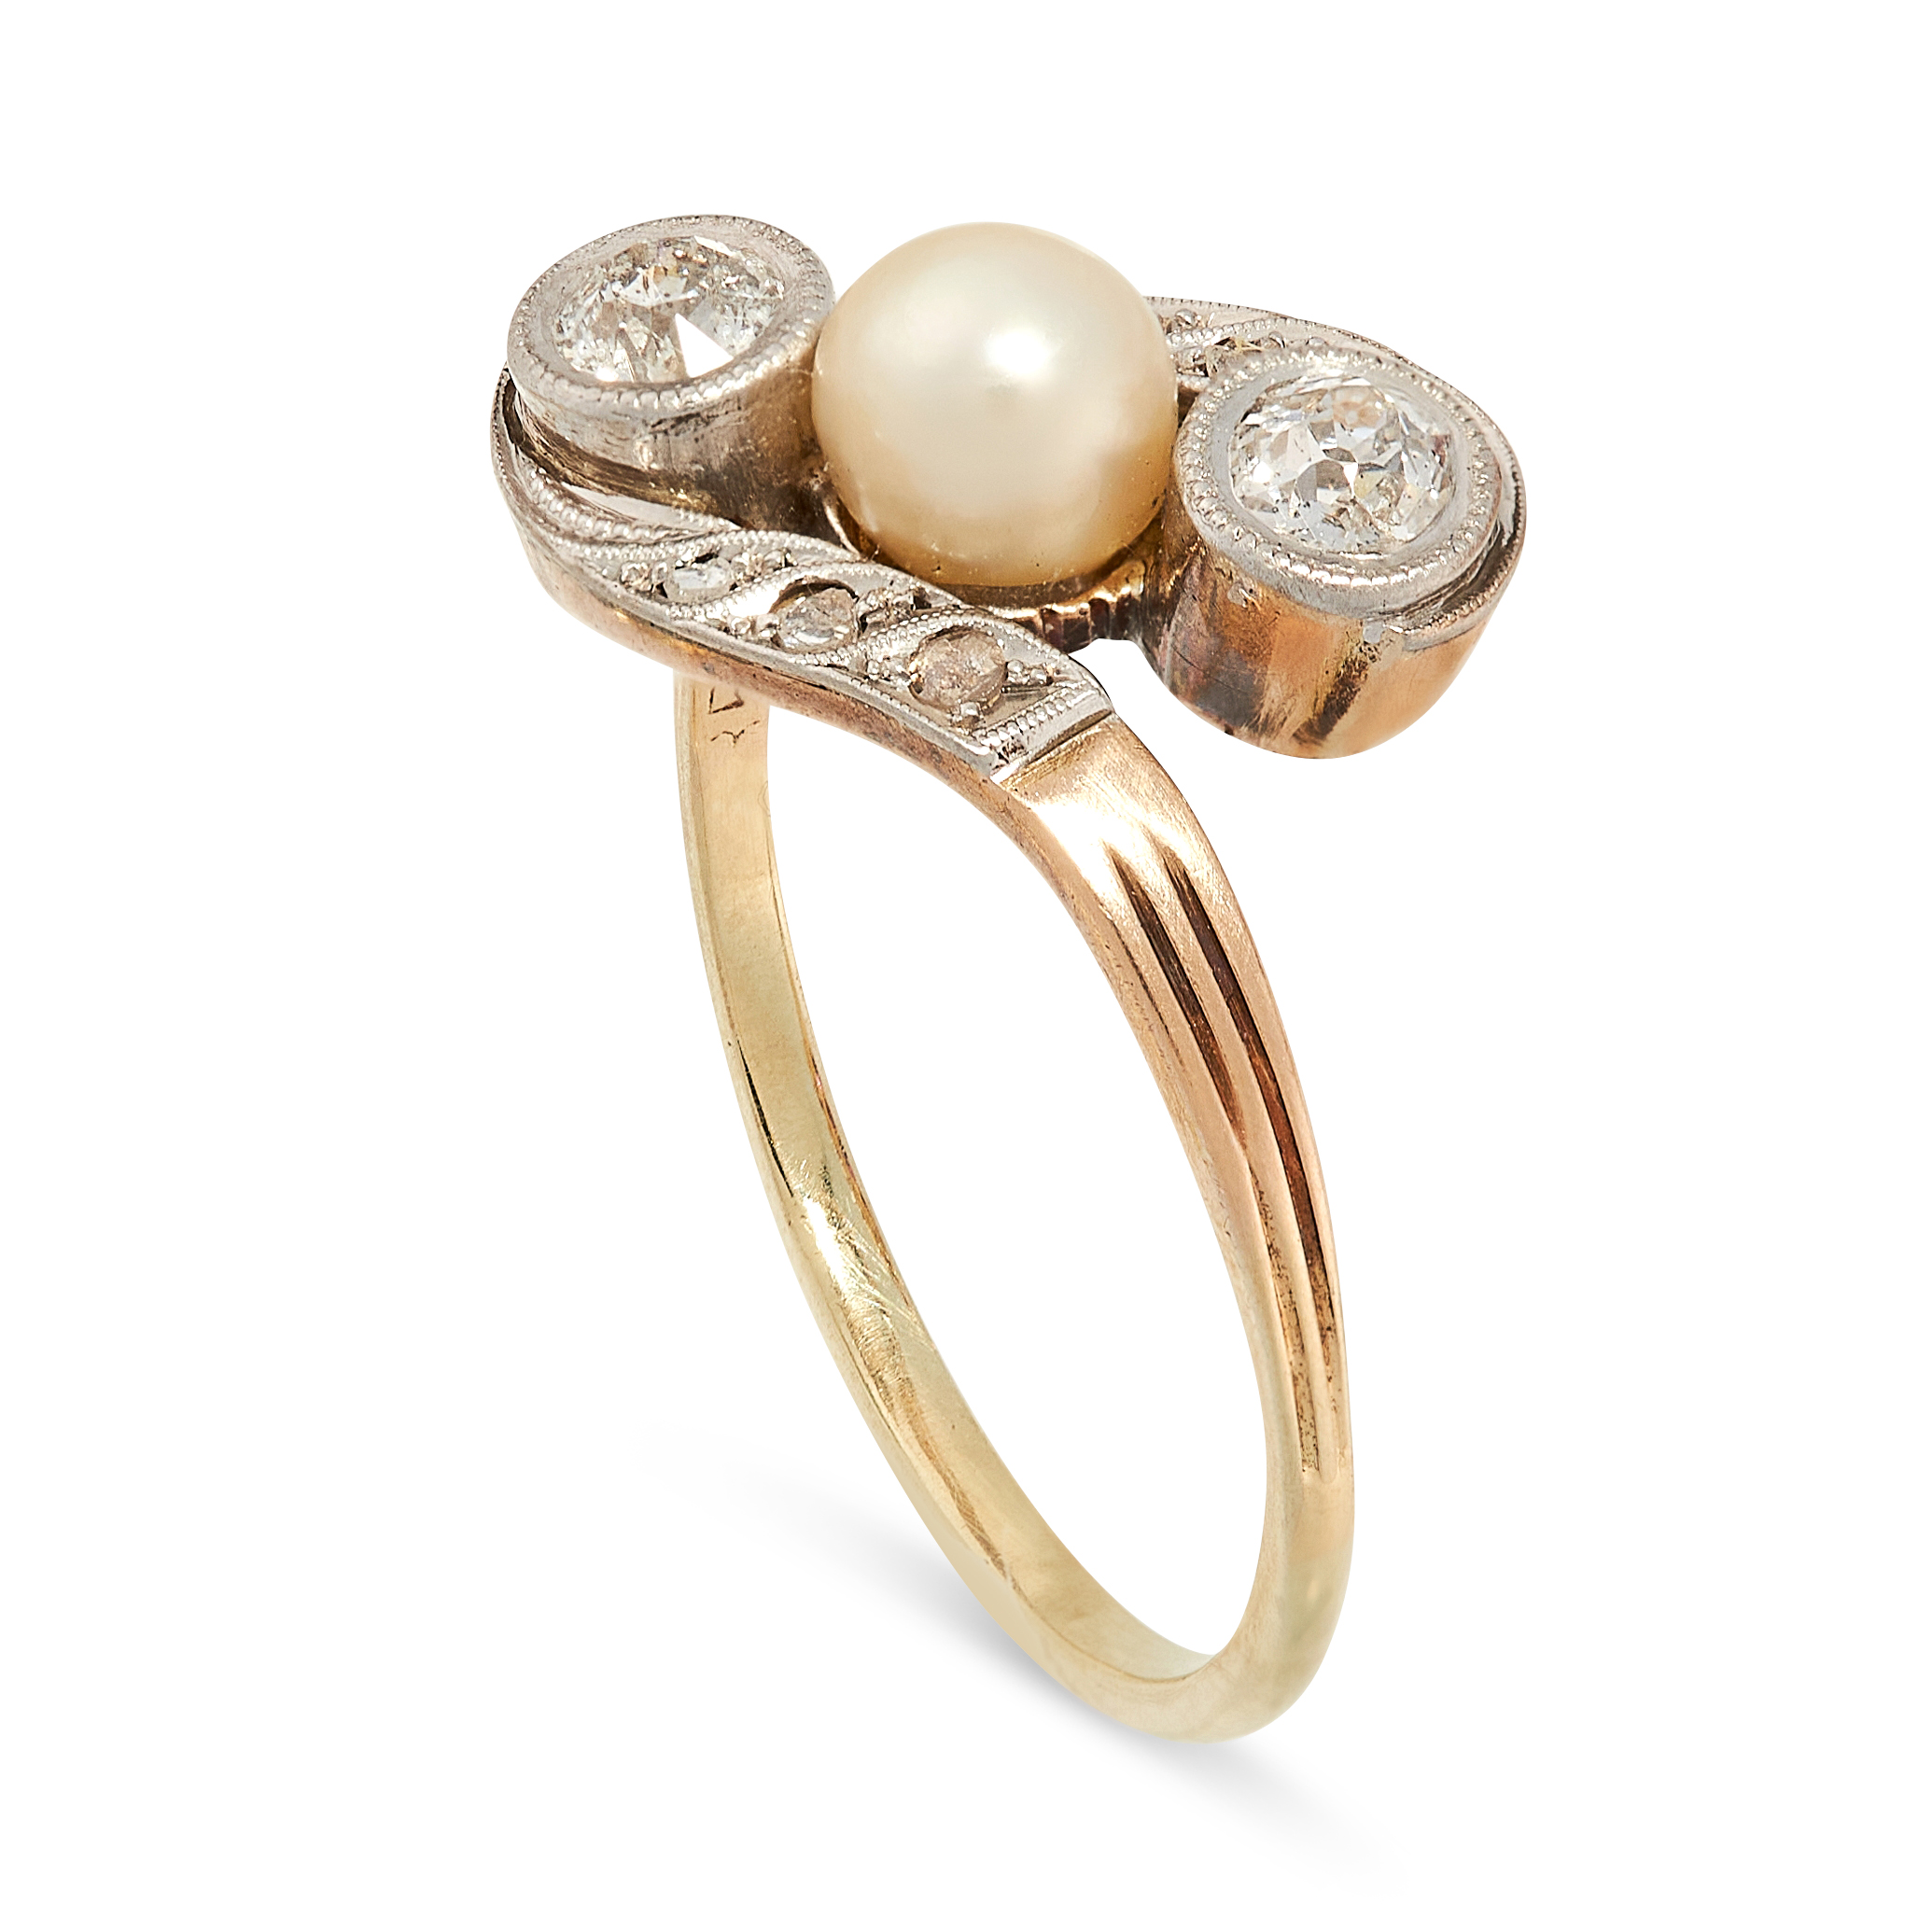 A PEARL AND DIAMOND DRESS RING, CIRCA 1940 in 14ct yellow gold, of twisted design, set with a - Image 2 of 2